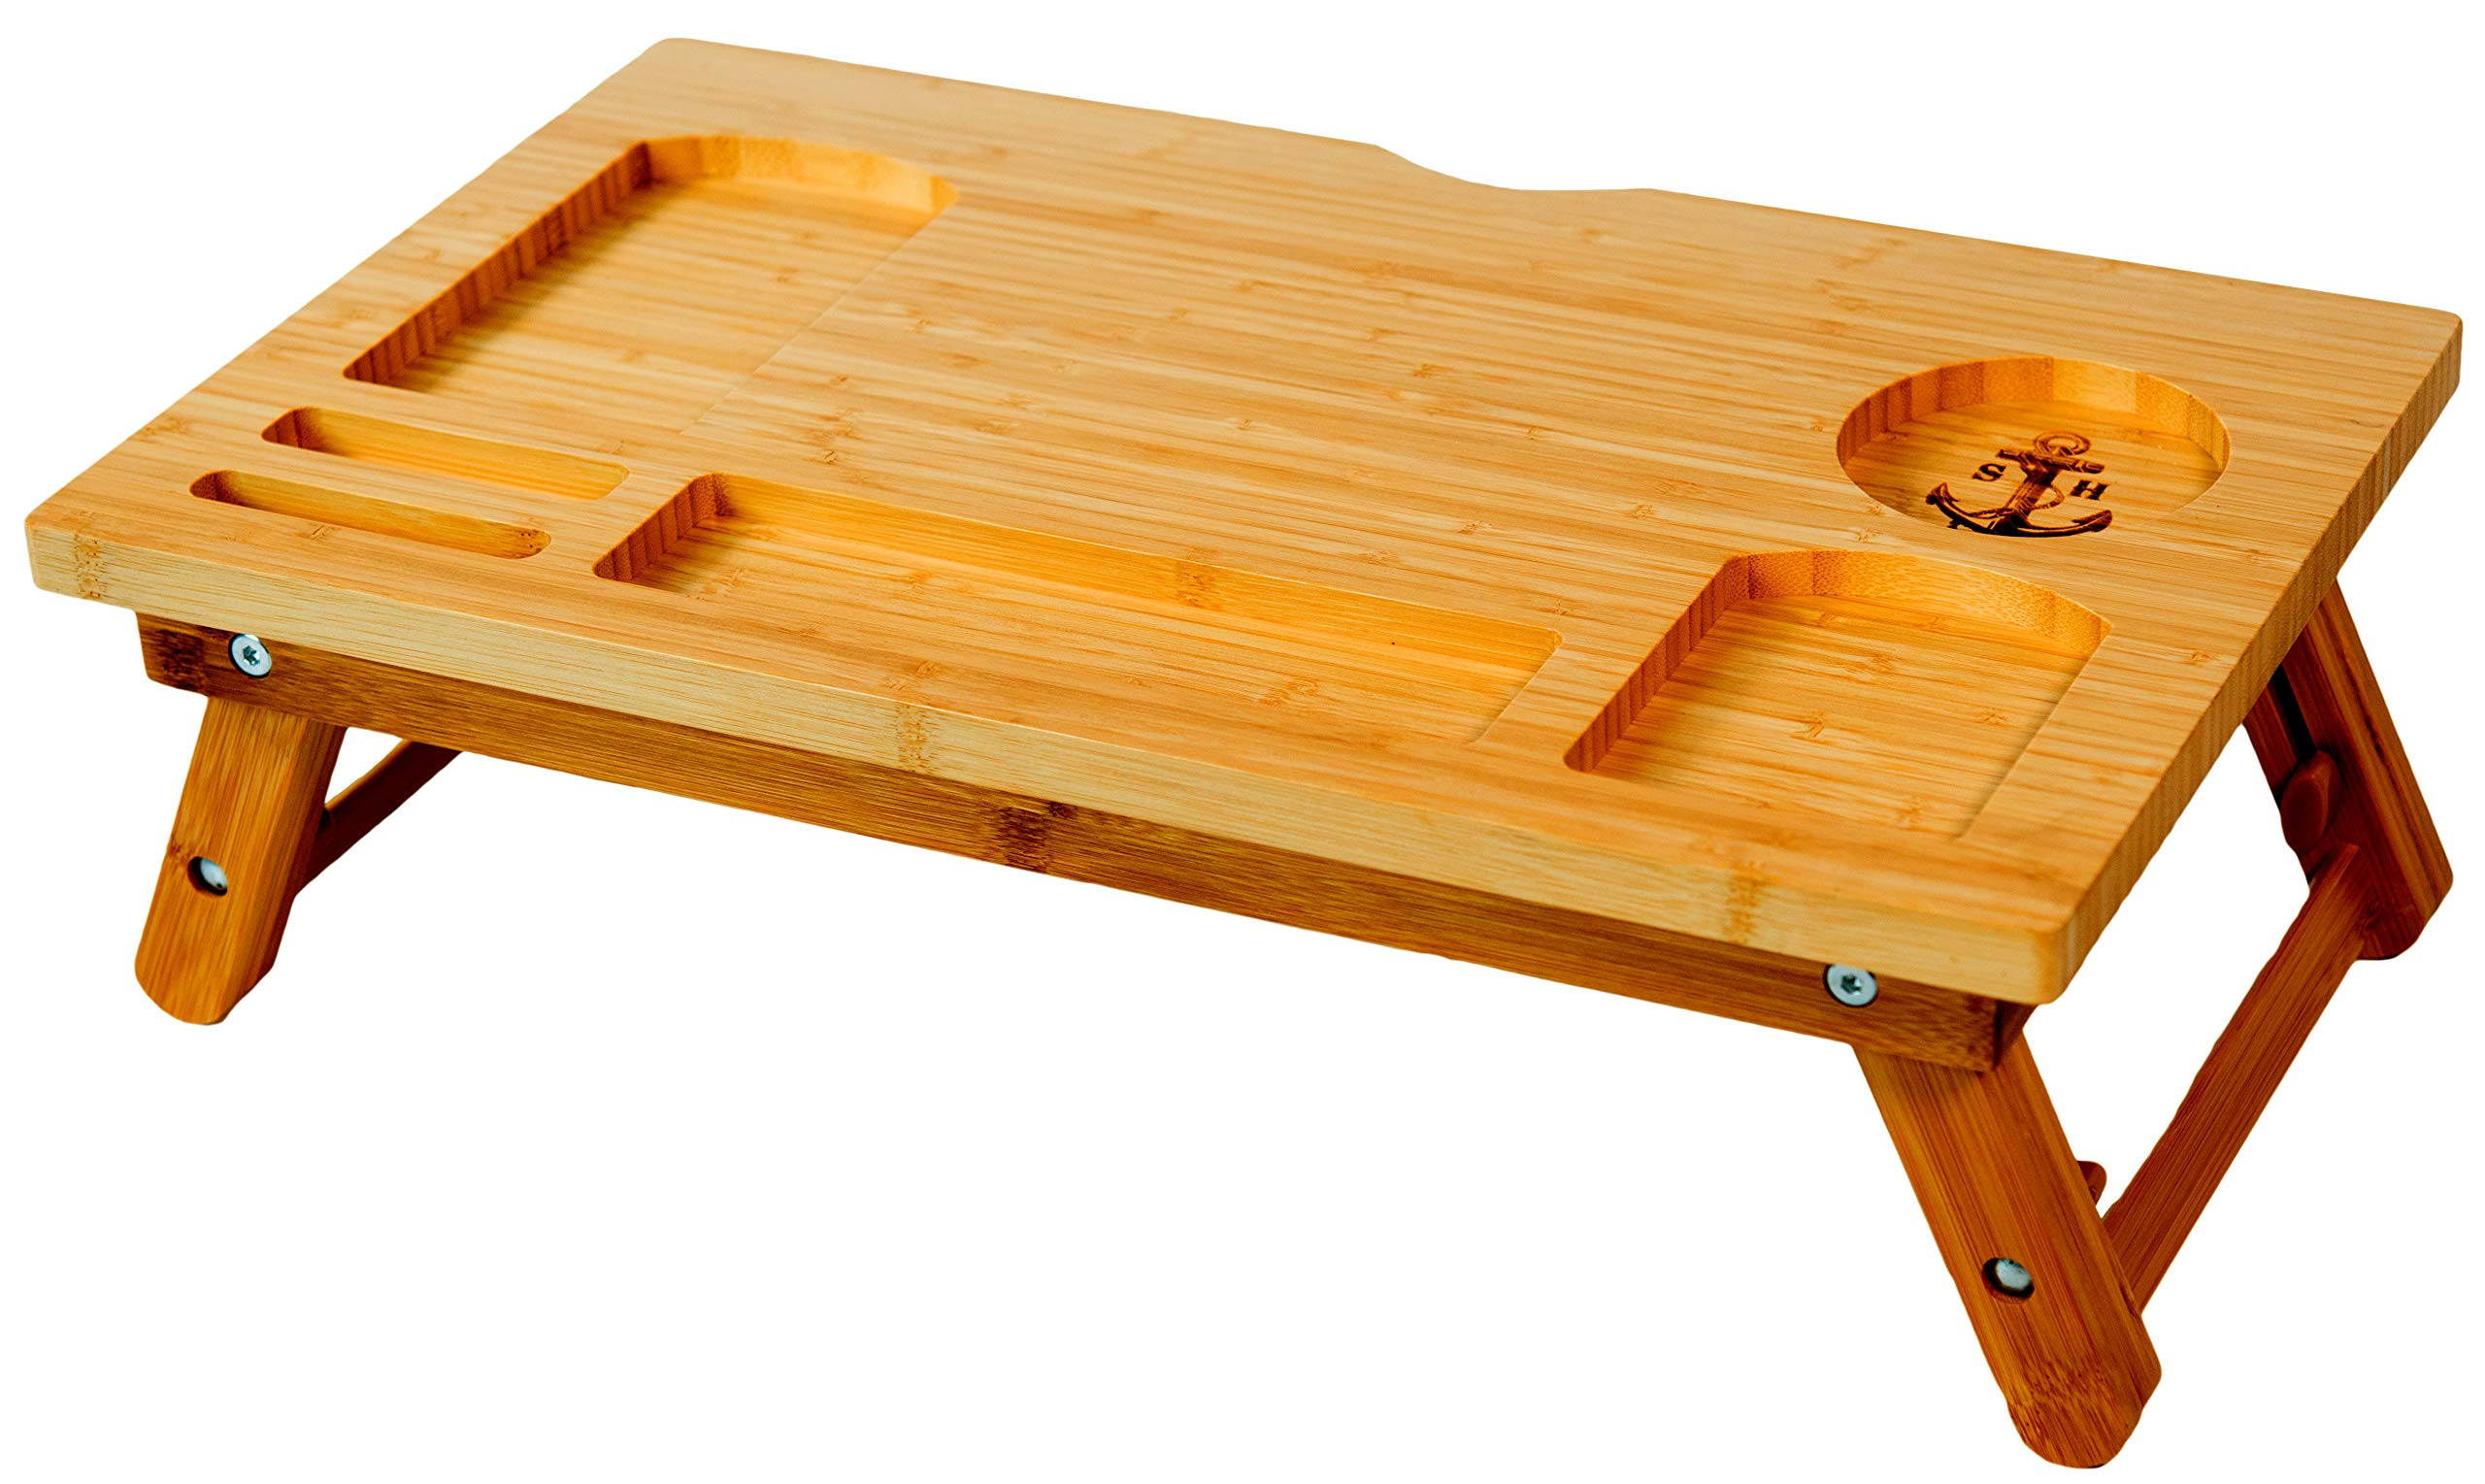 Stock Harbor Laptop Lap Desk, Bed Tray, Computer Monitor Stand of Sturdy Bamboo, Adjustable, Foldable and Large for All Your LapDesk Multitasking